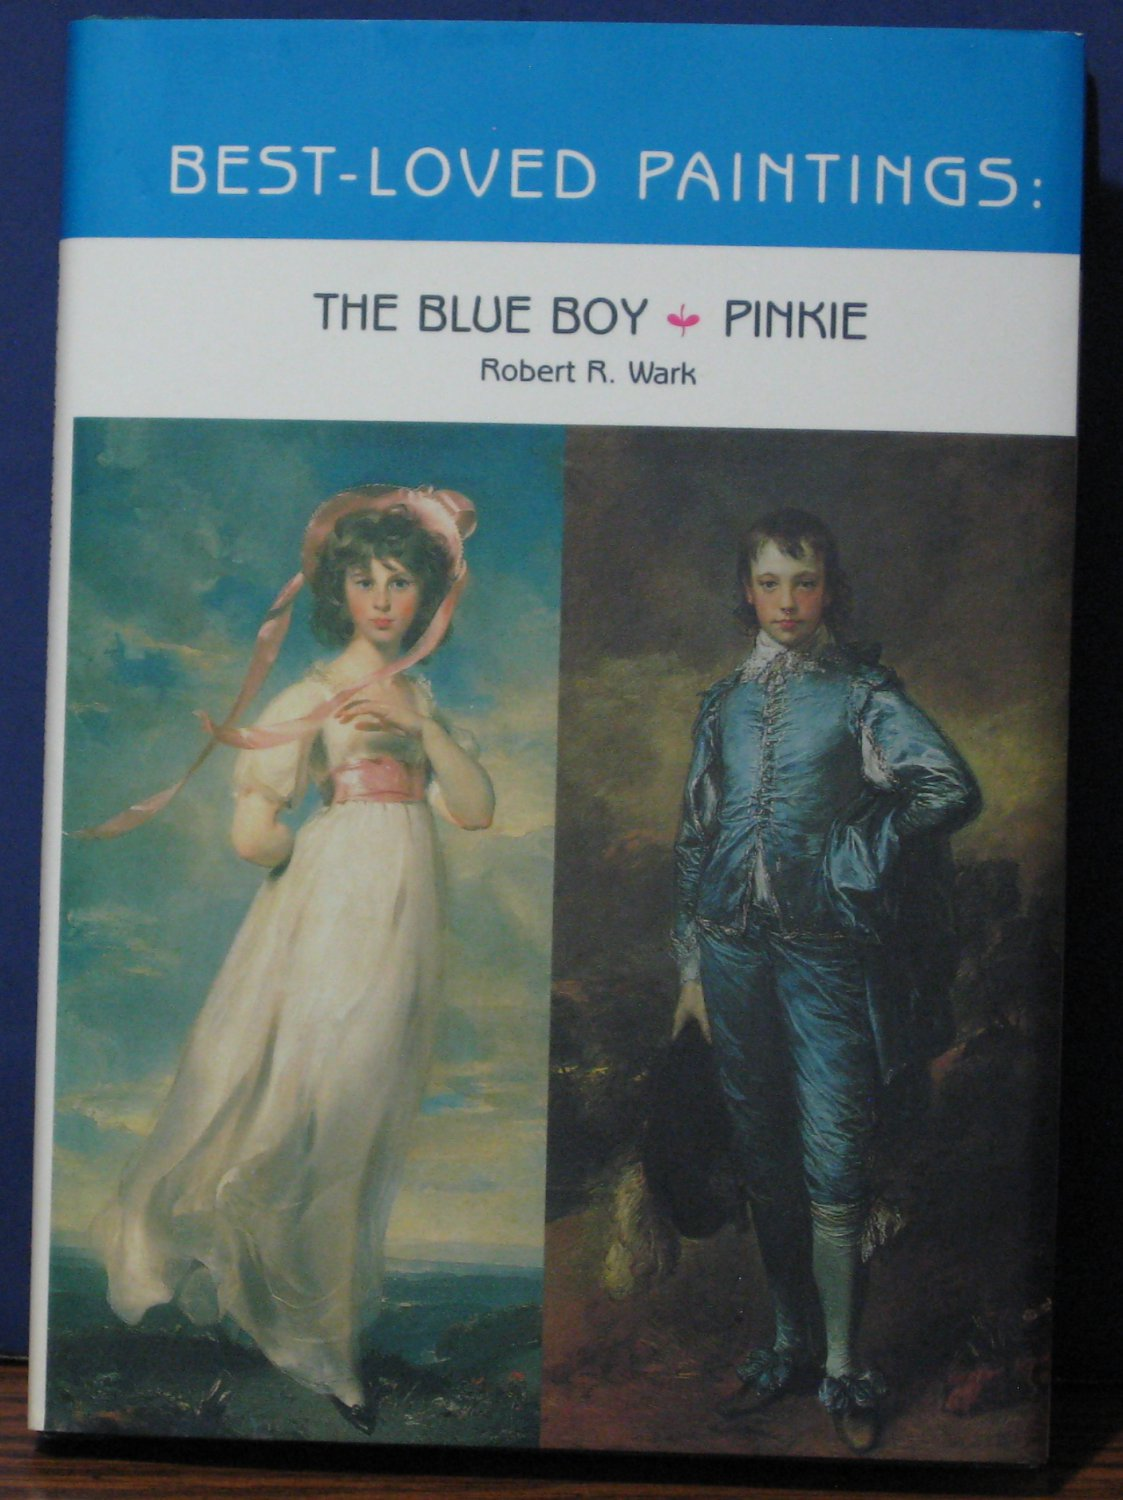 Huntington Gallery / Library Best Loved Paintings Book - Blue Boy and Pinkie